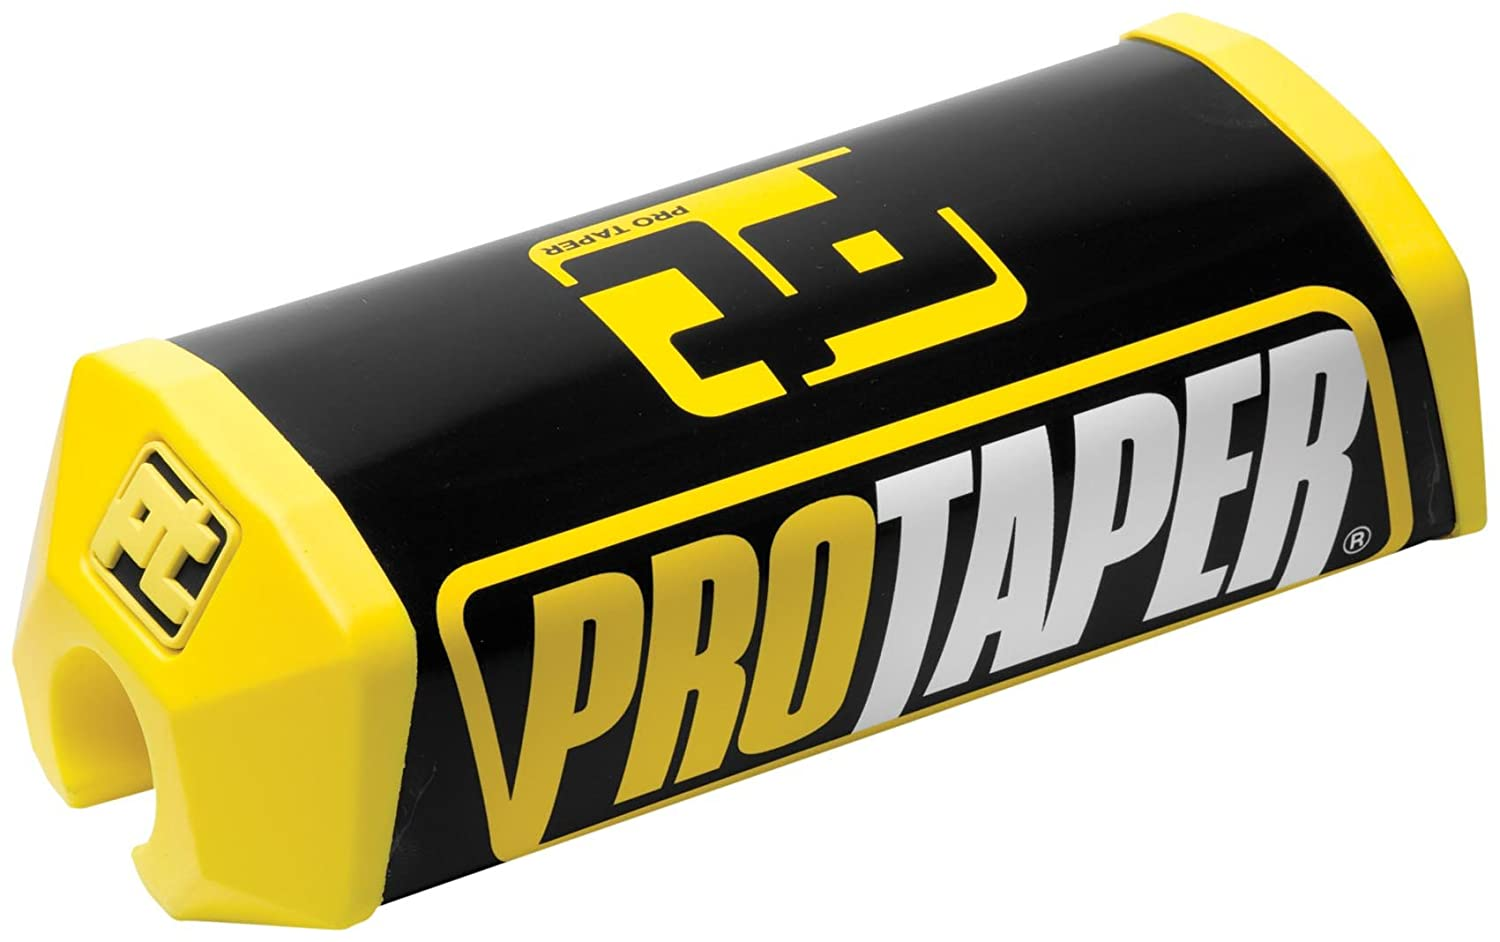 Pro Taper Standard 2.0 Square Crossbar Pads - Yellow/Black 028400 Z02-8400